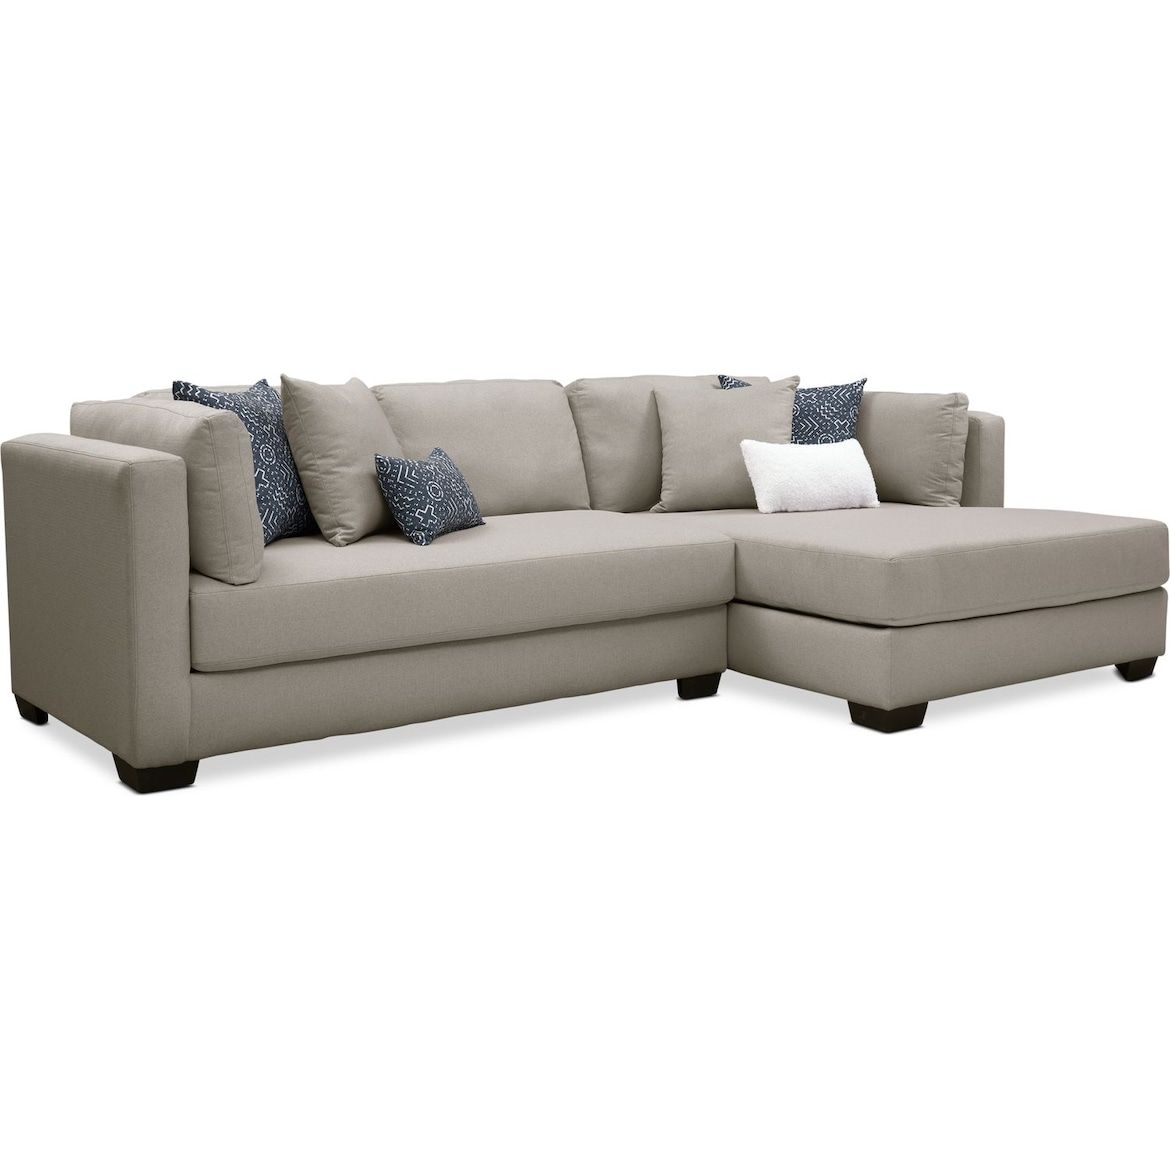 Rosalyn 2 Piece Sectional With Chaise In 2020 Living Room Sectional Sectional Media Room Seating